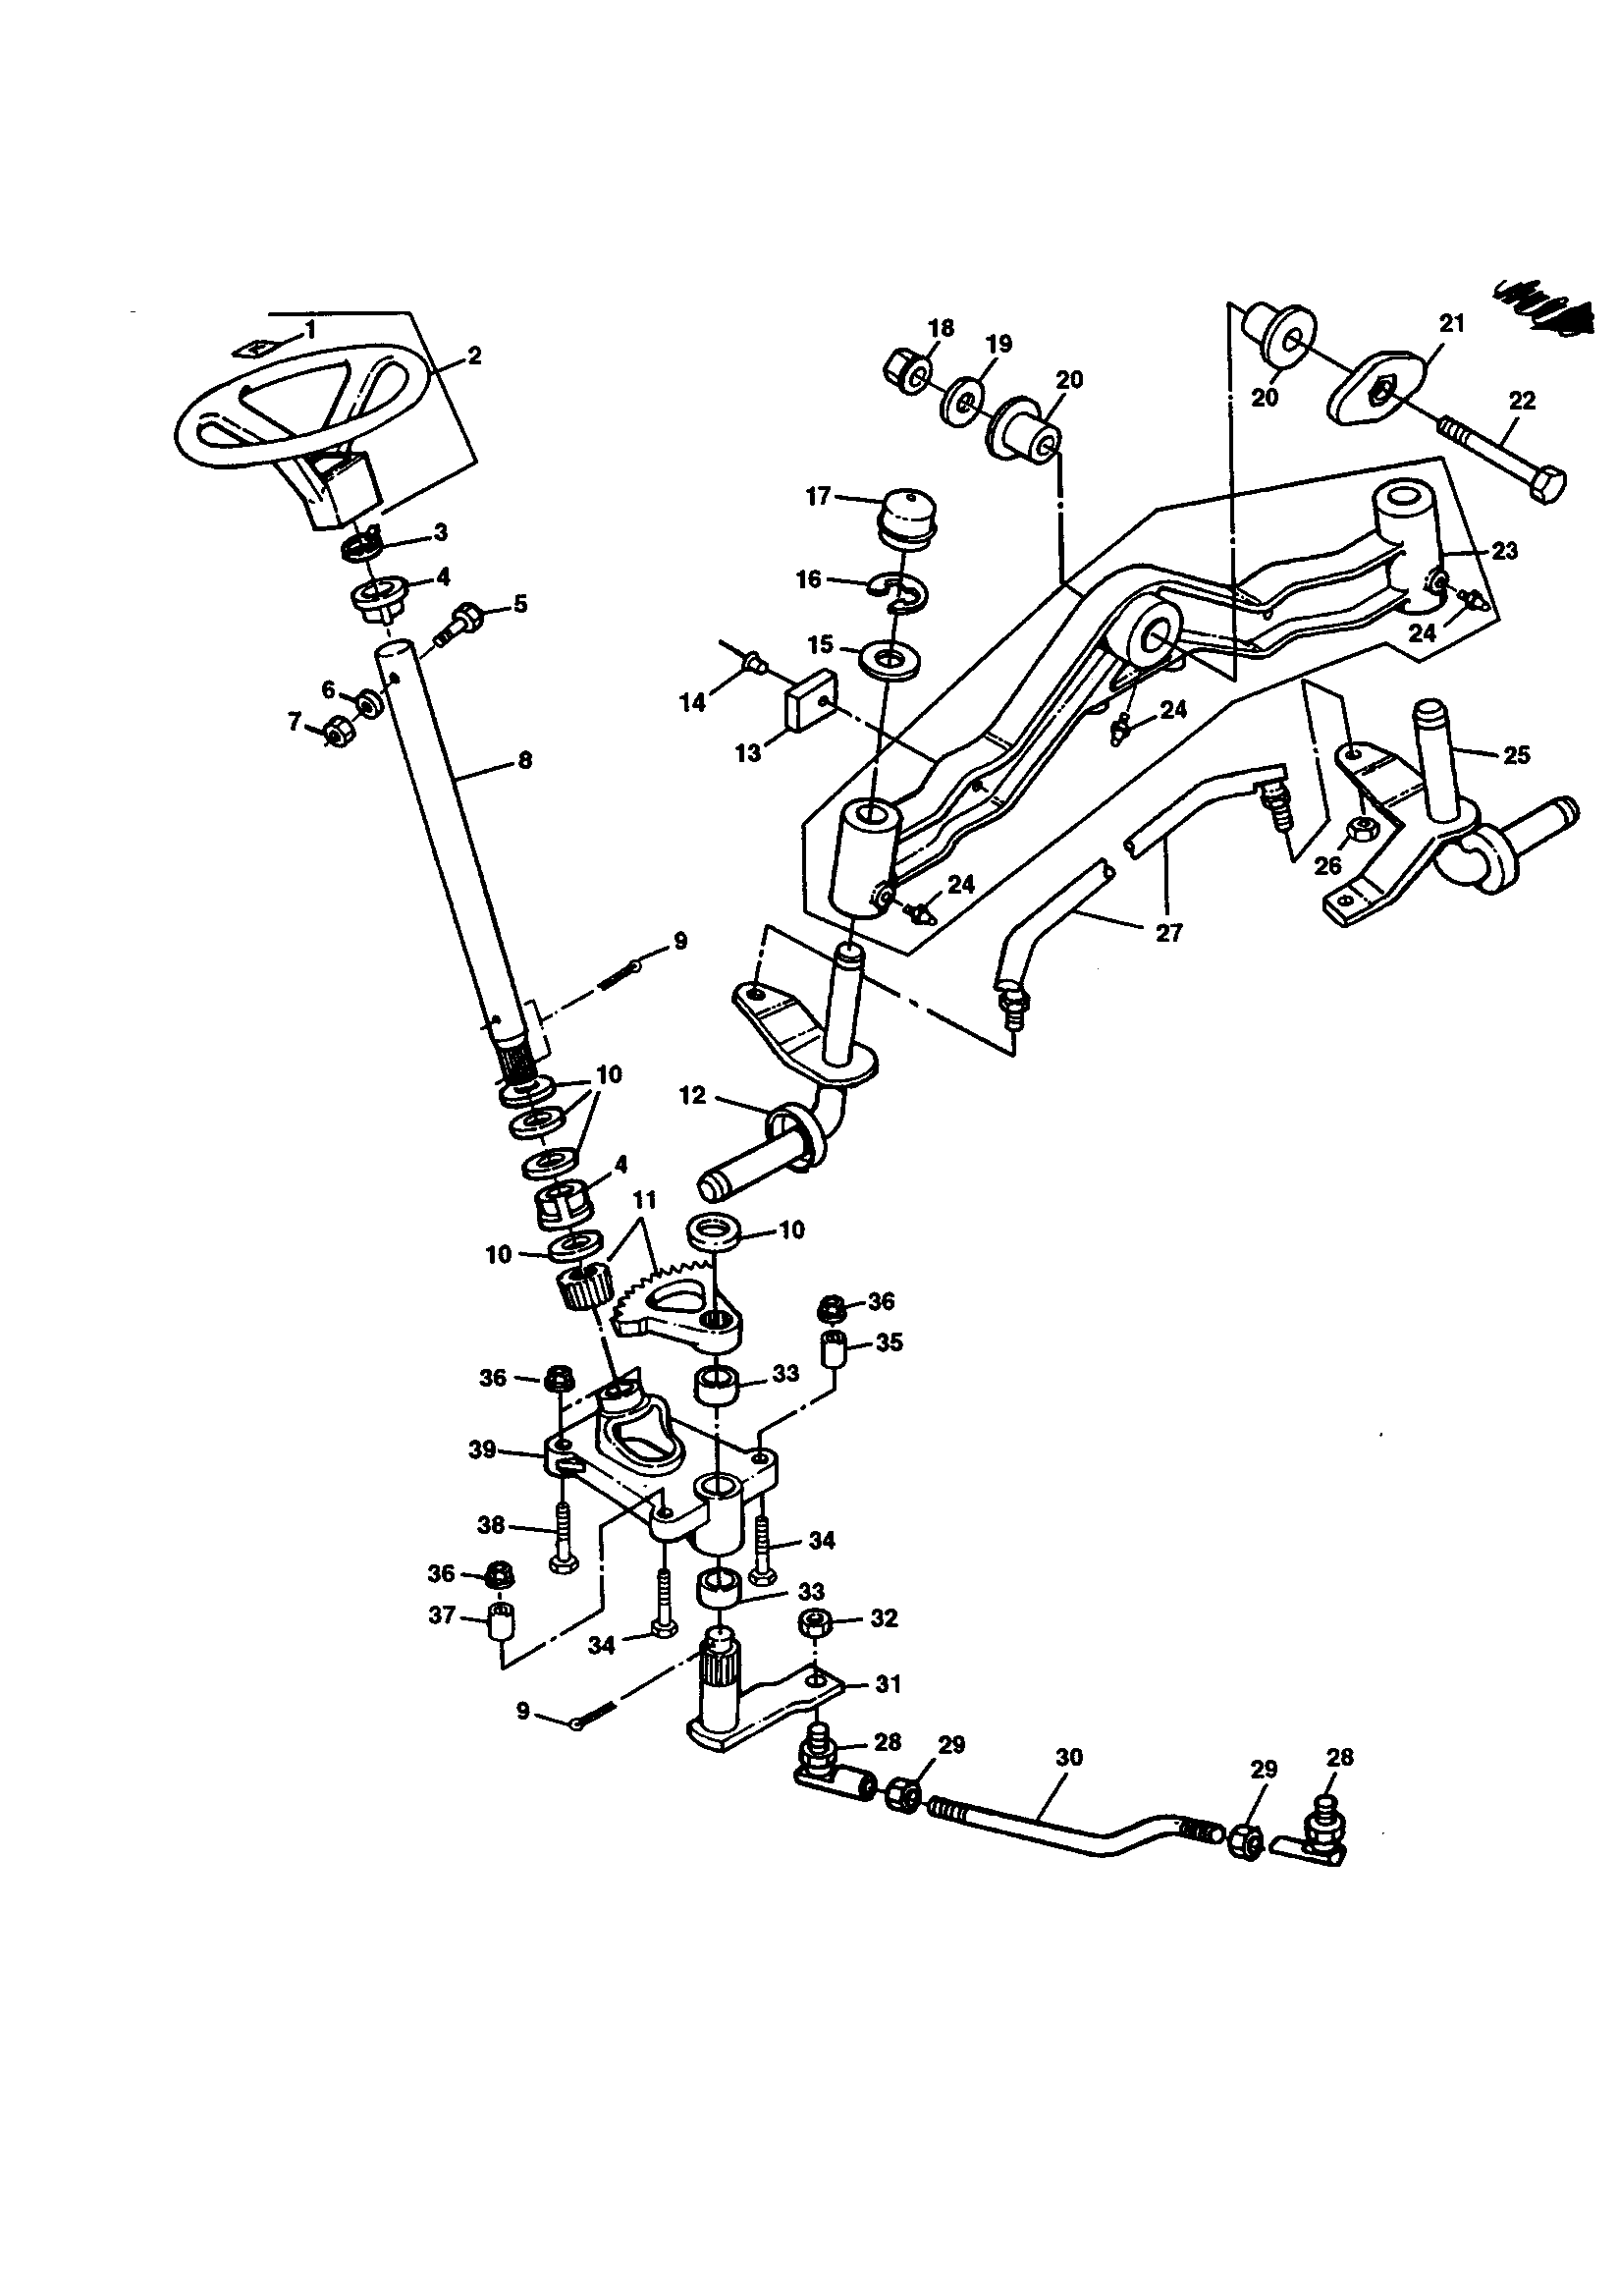 Lx277 Parts Diagram likewise 2006 Lincoln Zephyr Parts Diagram Html further John Deere L107 Garden Tractor Spare Parts in addition John Deere La150 Lawn Tractor Parts Throughout L110 John Deere Parts Diagram besides 6gubf John Deere L110 Riding Lawn Mower Worked Ok Until. on john deere l110 steering parts